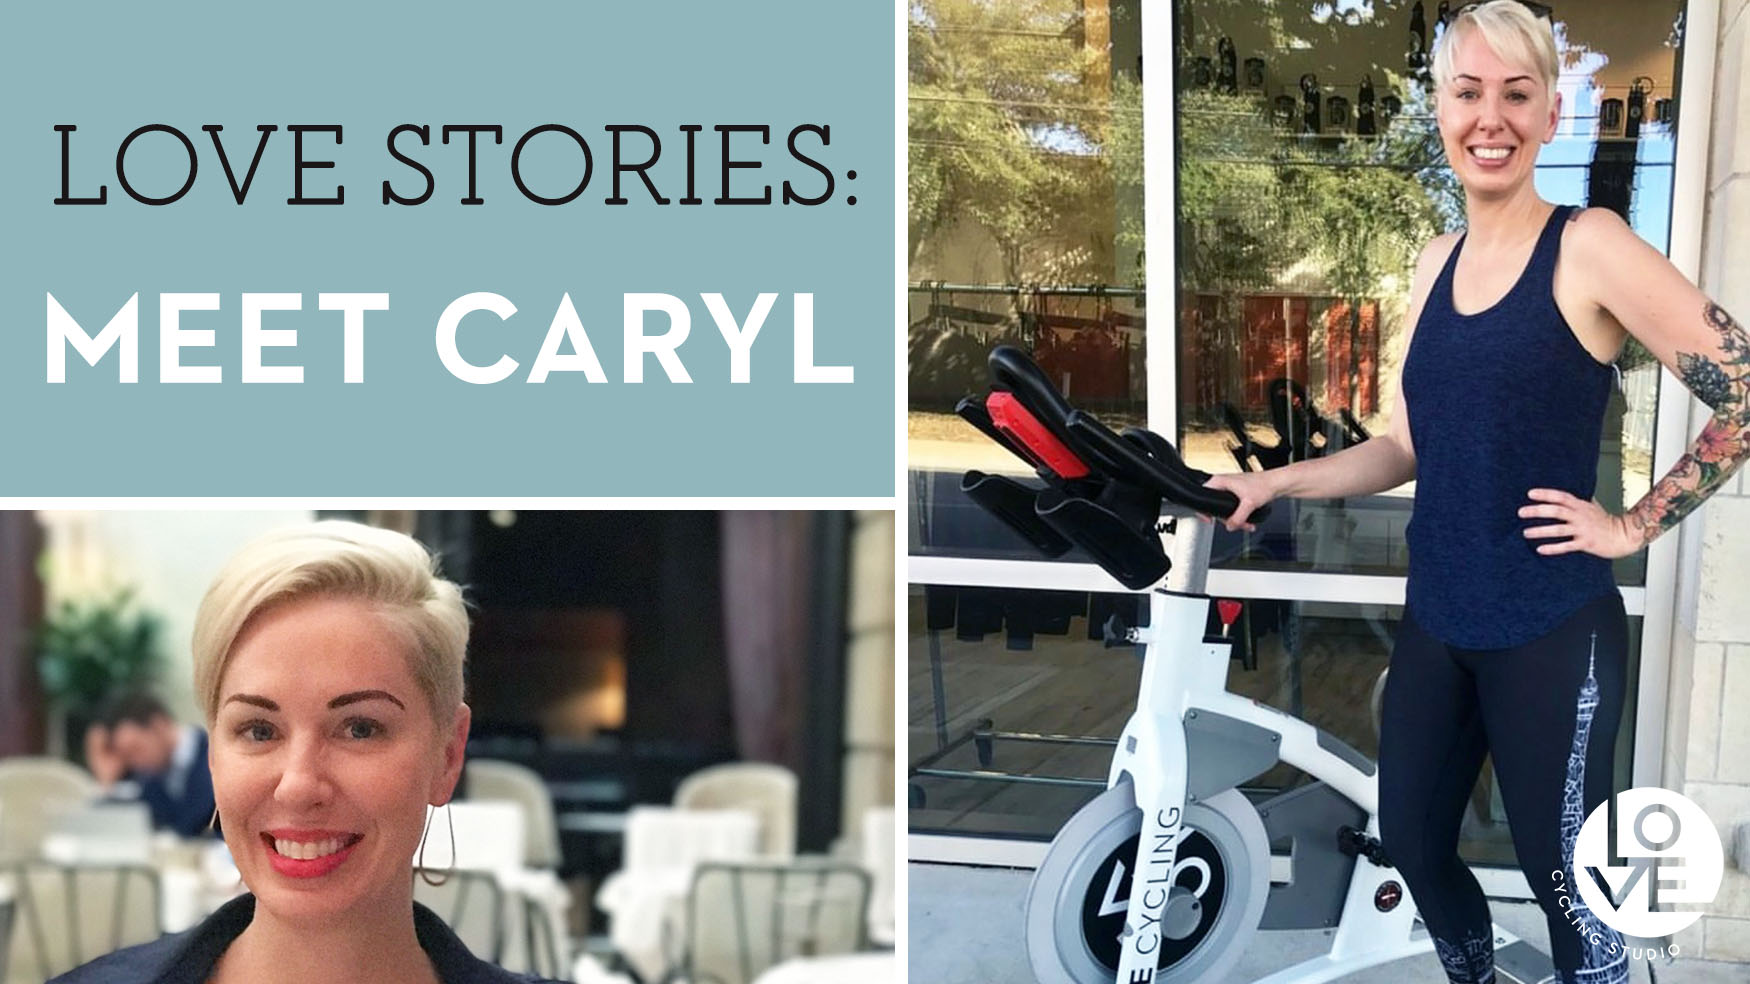 LOVE Stories: Meet Caryl